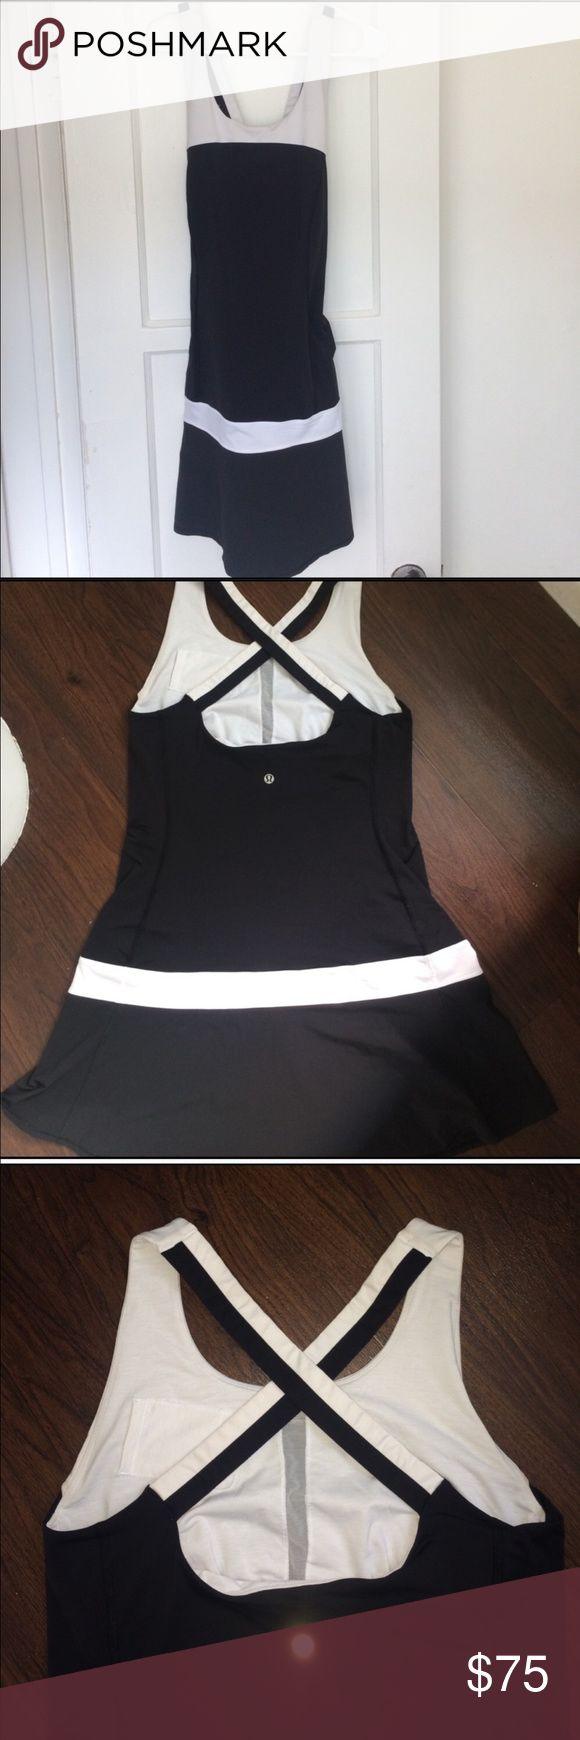 Lululemon dress Women's size 6. Like new! Black and white Lululemon tennis/workout dress. lululemon athletica Dresses